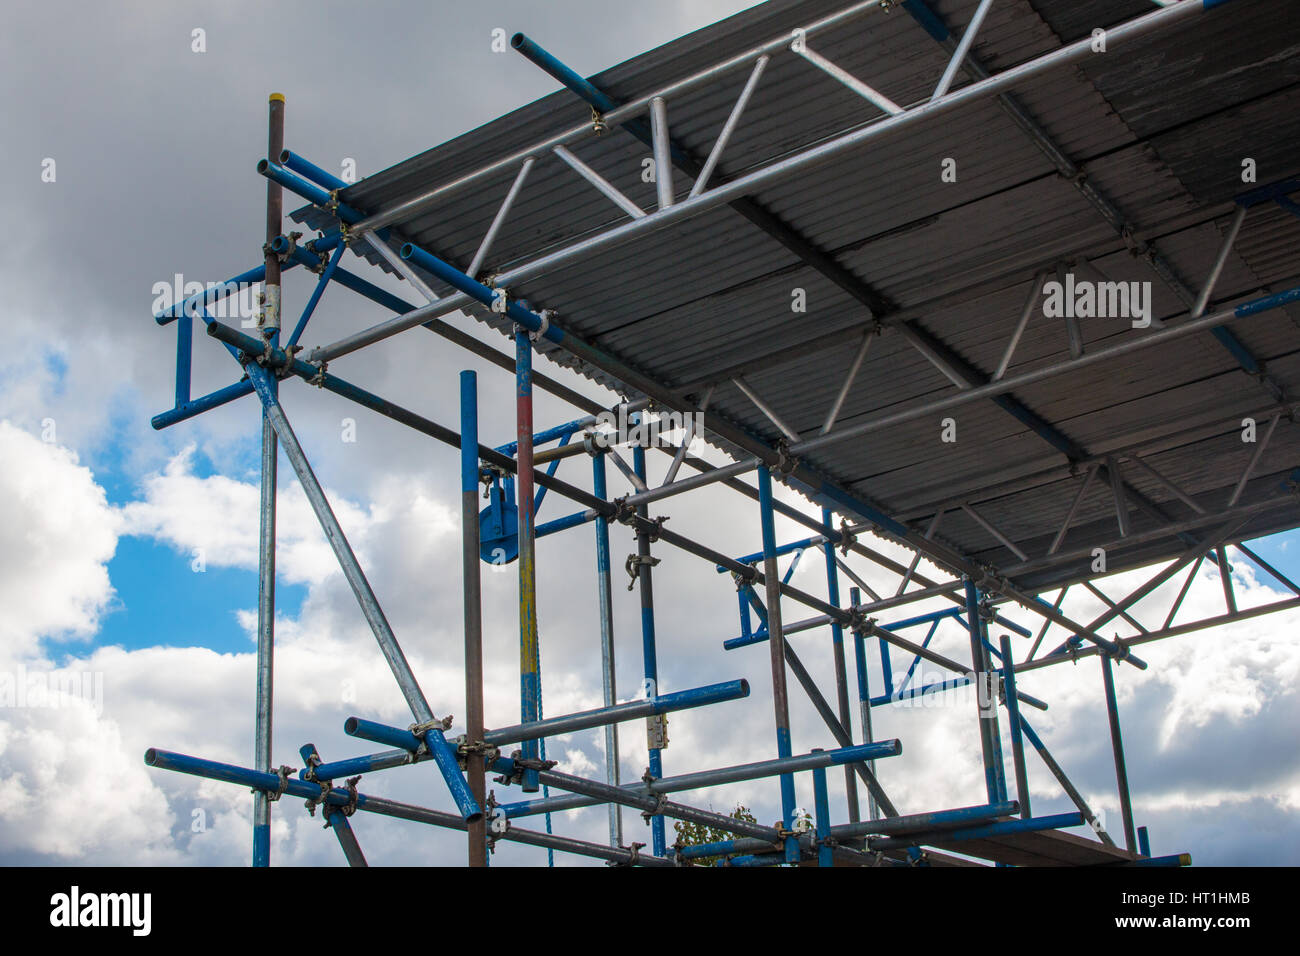 Scaffold in the sky - Stock Image